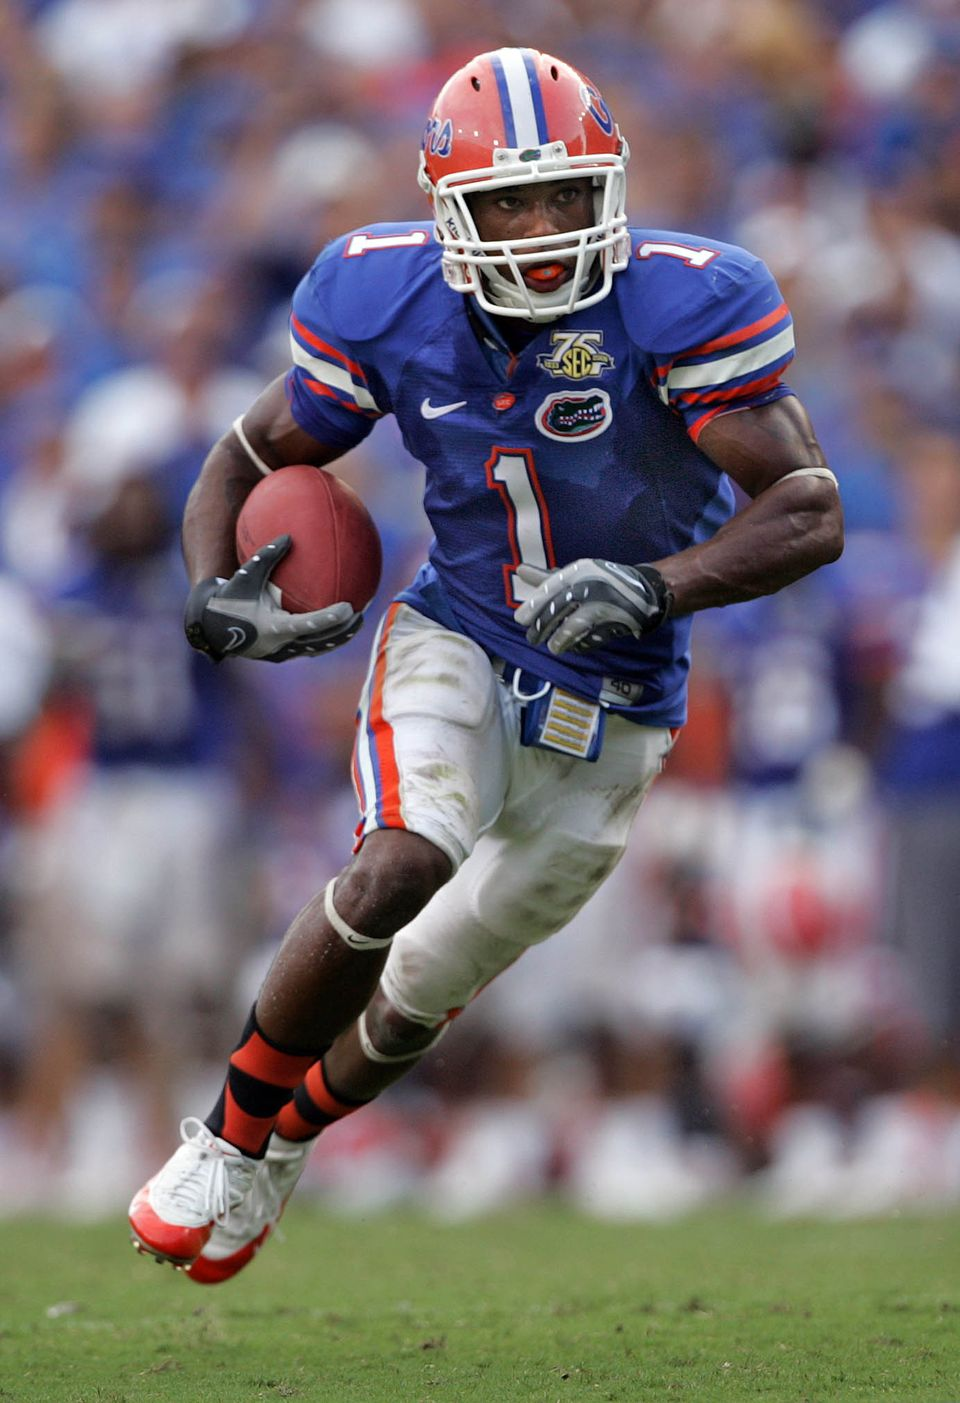 Top 5 WR's in Gator Football History